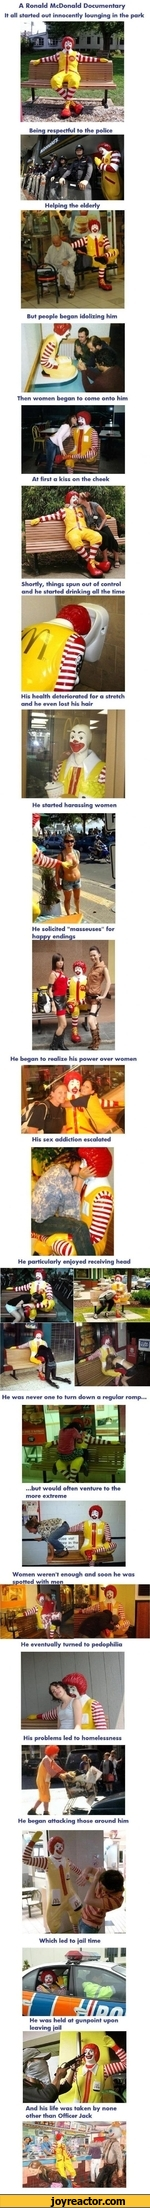 A Ronald McDonald Documentary It all started out innocently lounging in the parkBeing respectful to the policeHelping the elderlyBut people began idolizing himThen women began to come onto himAt first a kiss on the cheekShortly, things spun out of control and he started drinking all the timeHis